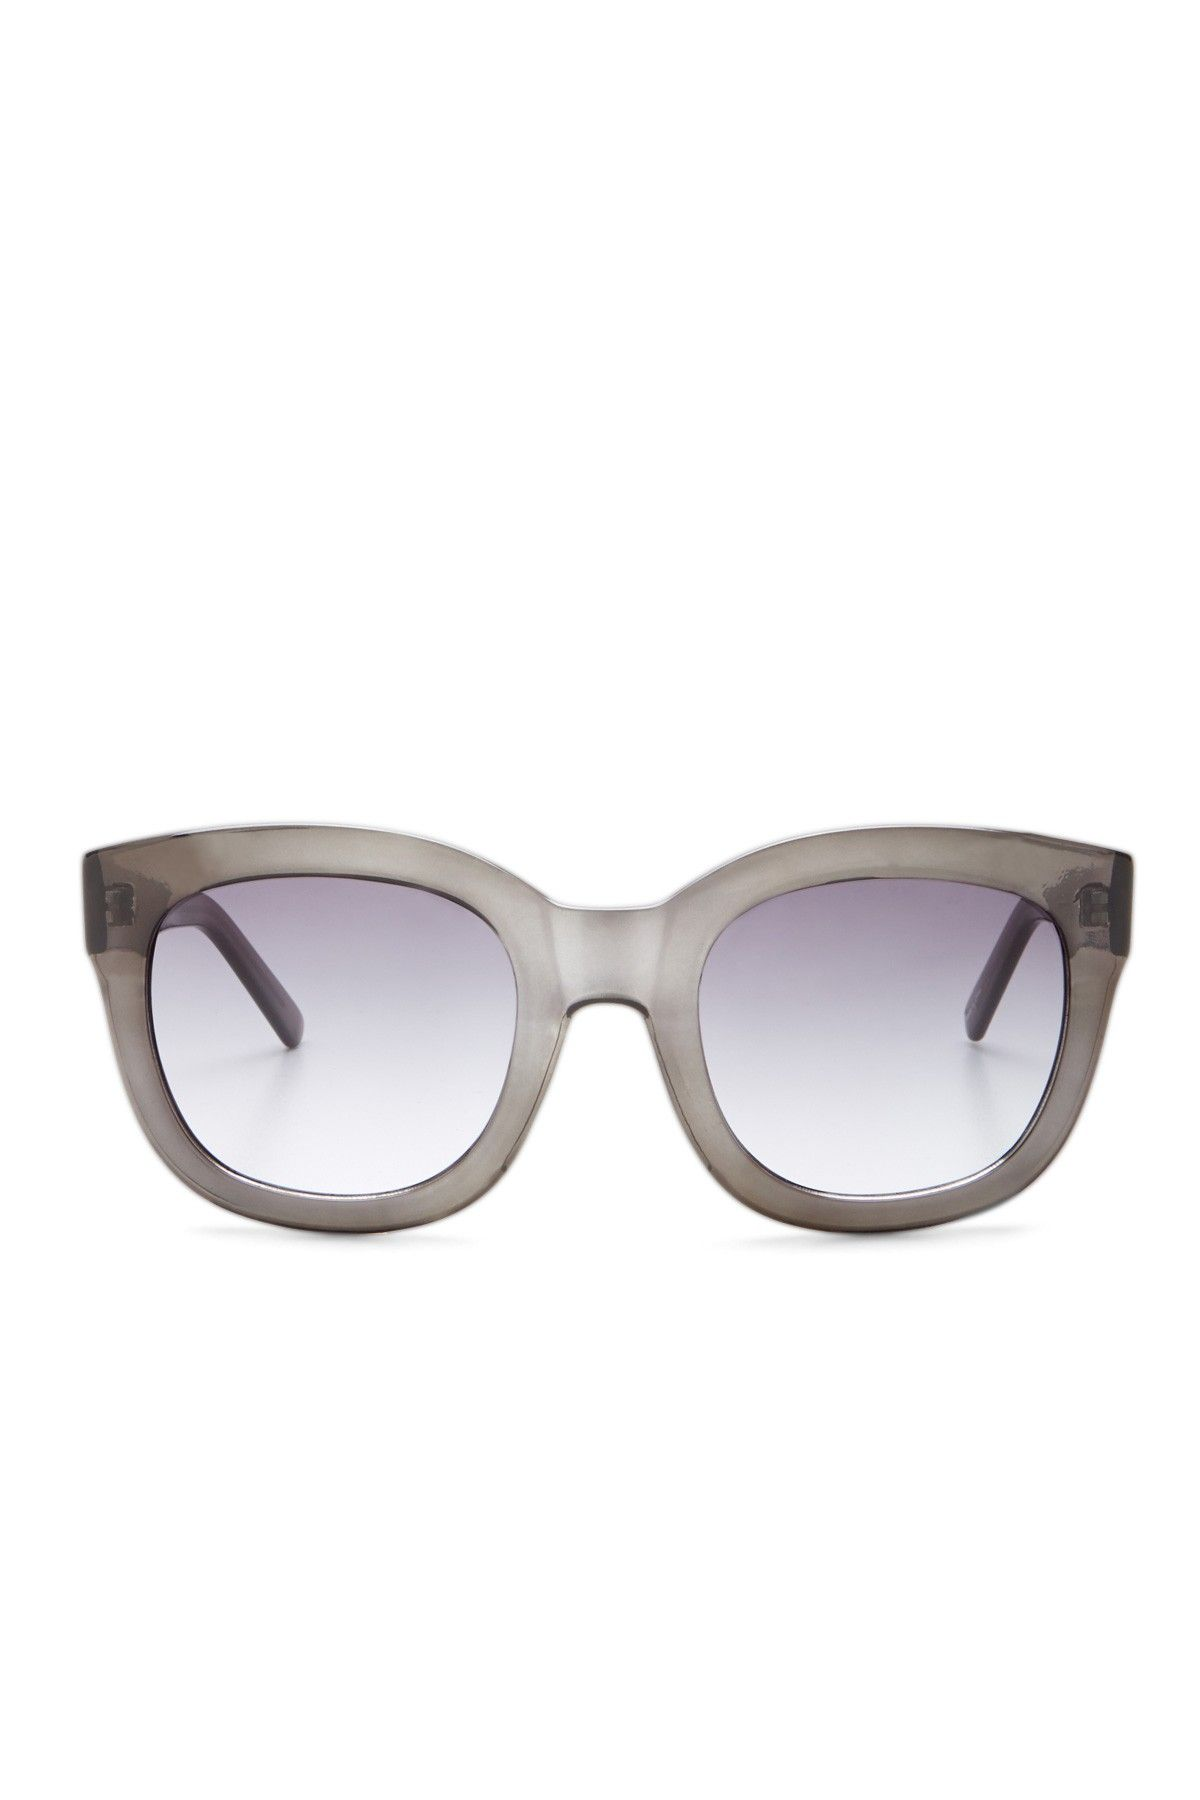 Women's Oversized Sunnies by Kate Spade Saturday on @HauteLook